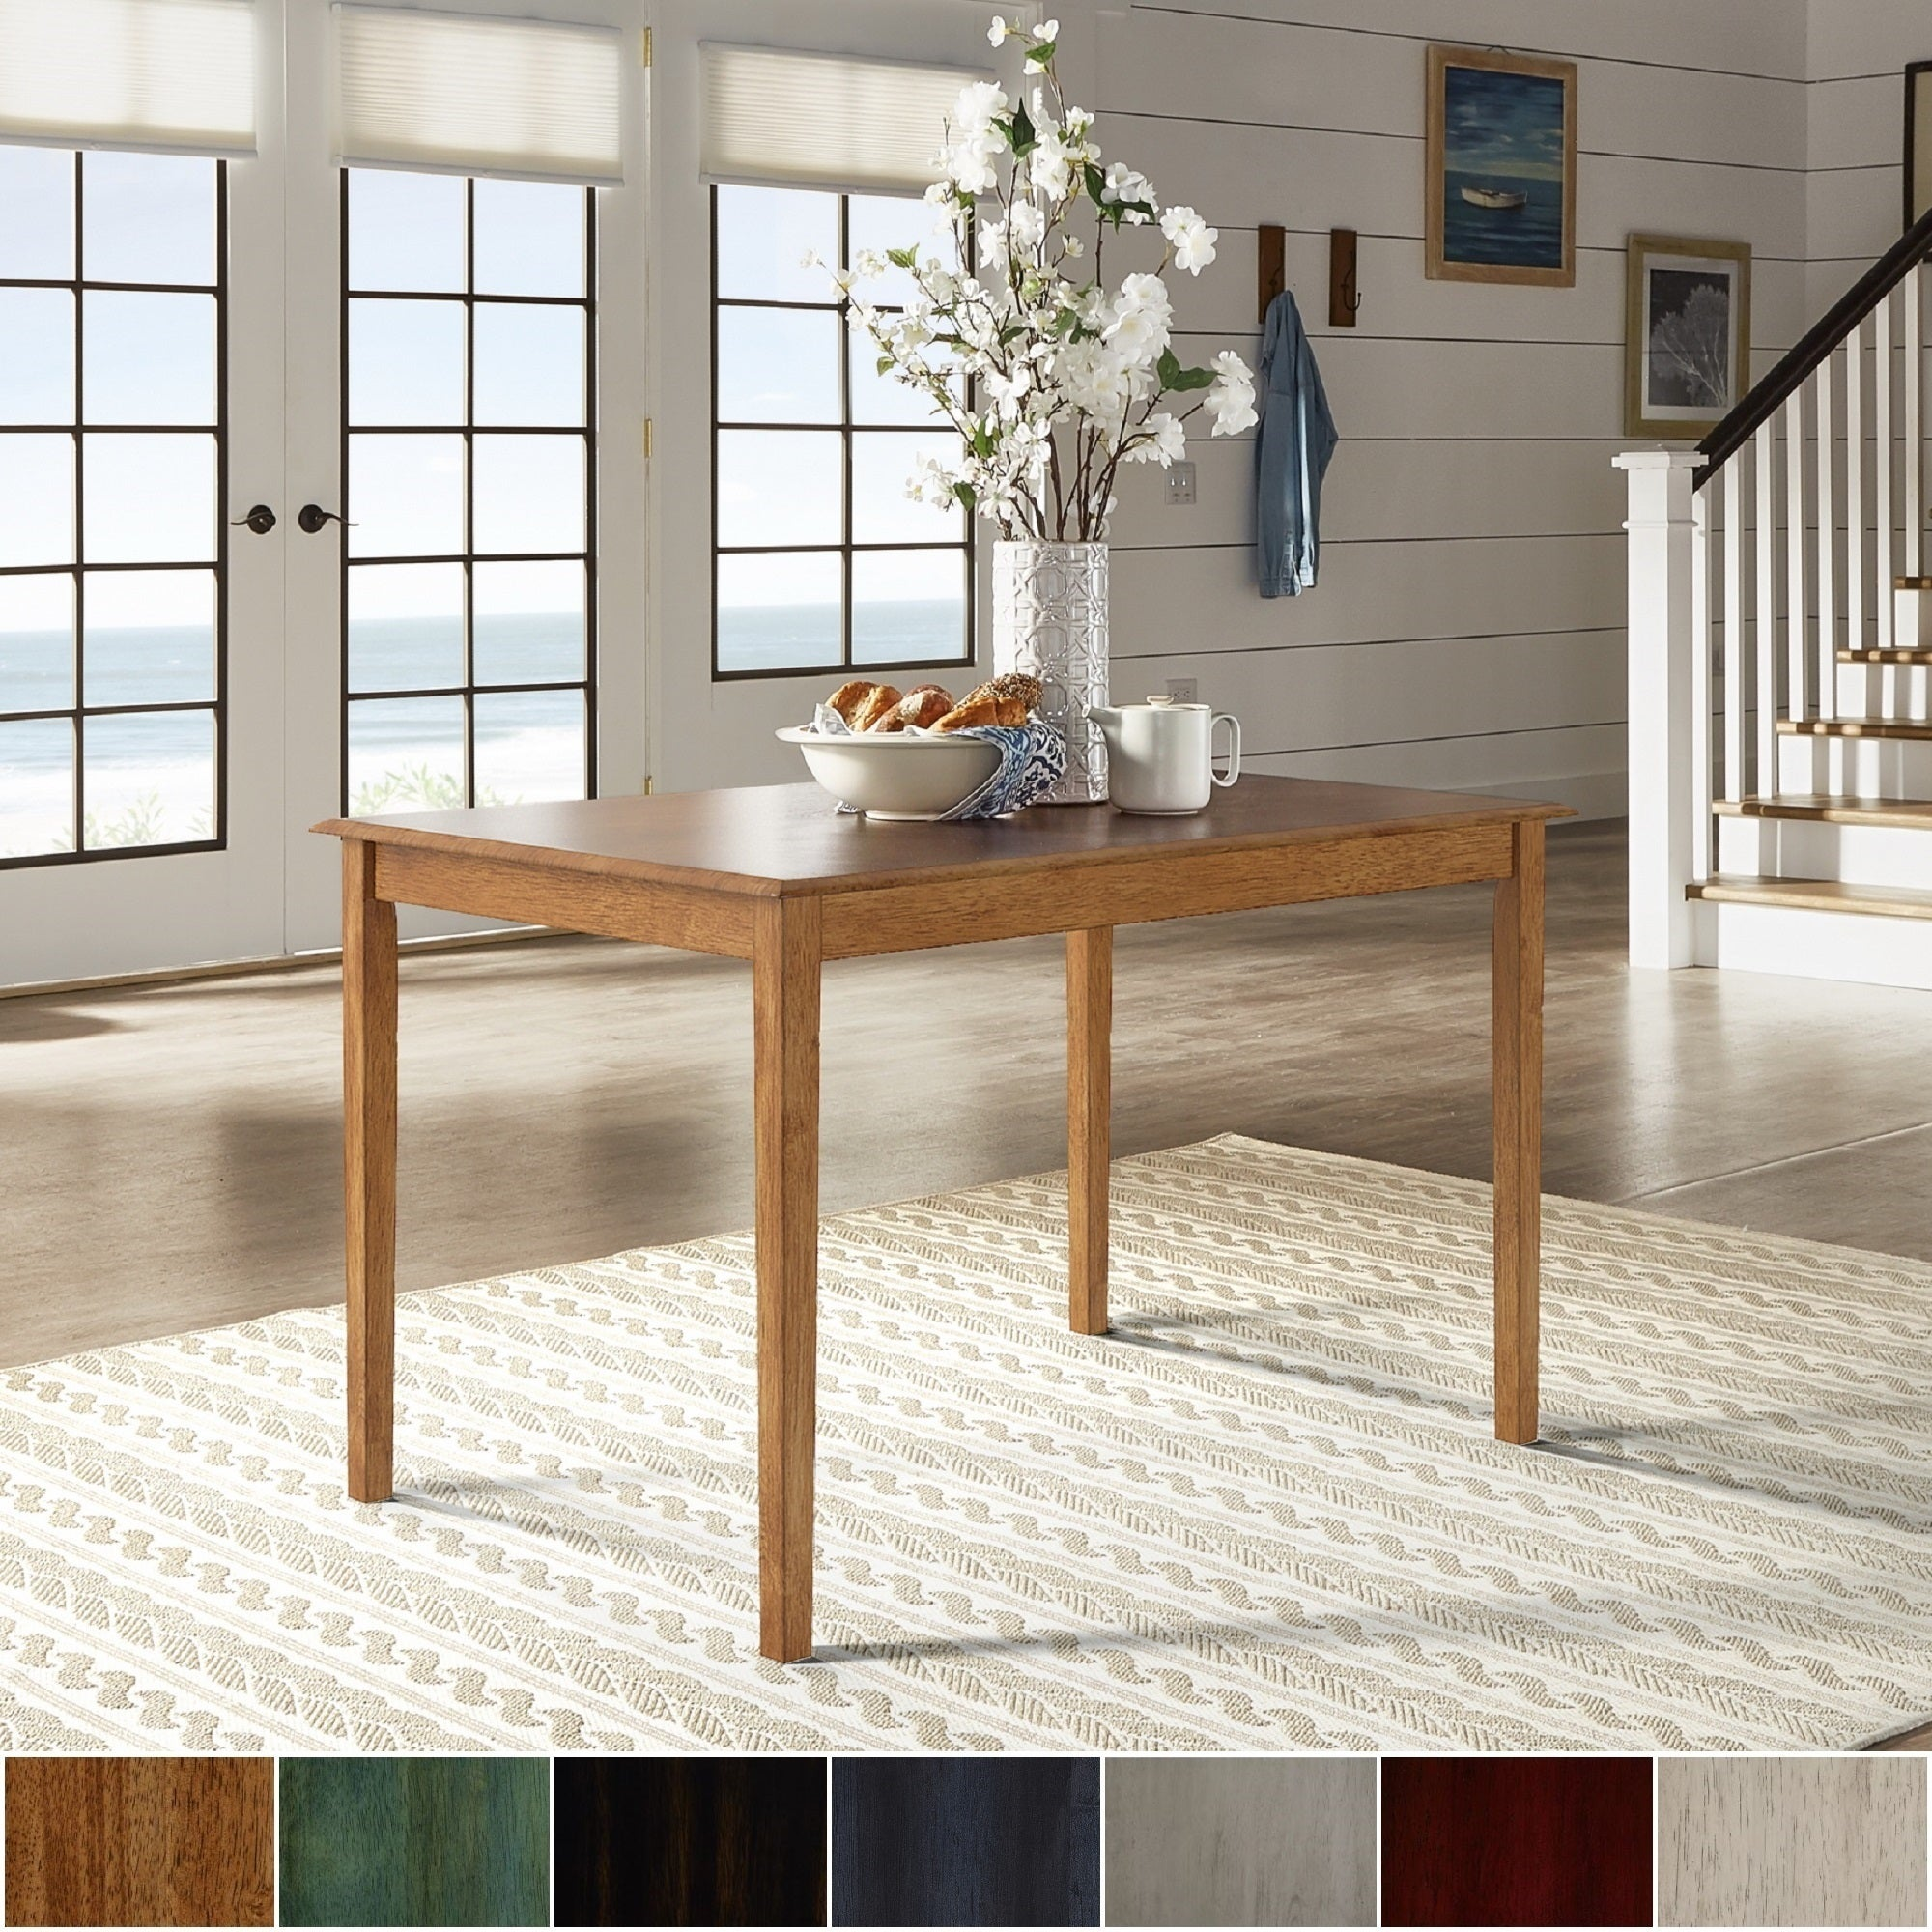 Details About Wilmington Ii 48 Inch Rectangular Dining Table By Inspire Q